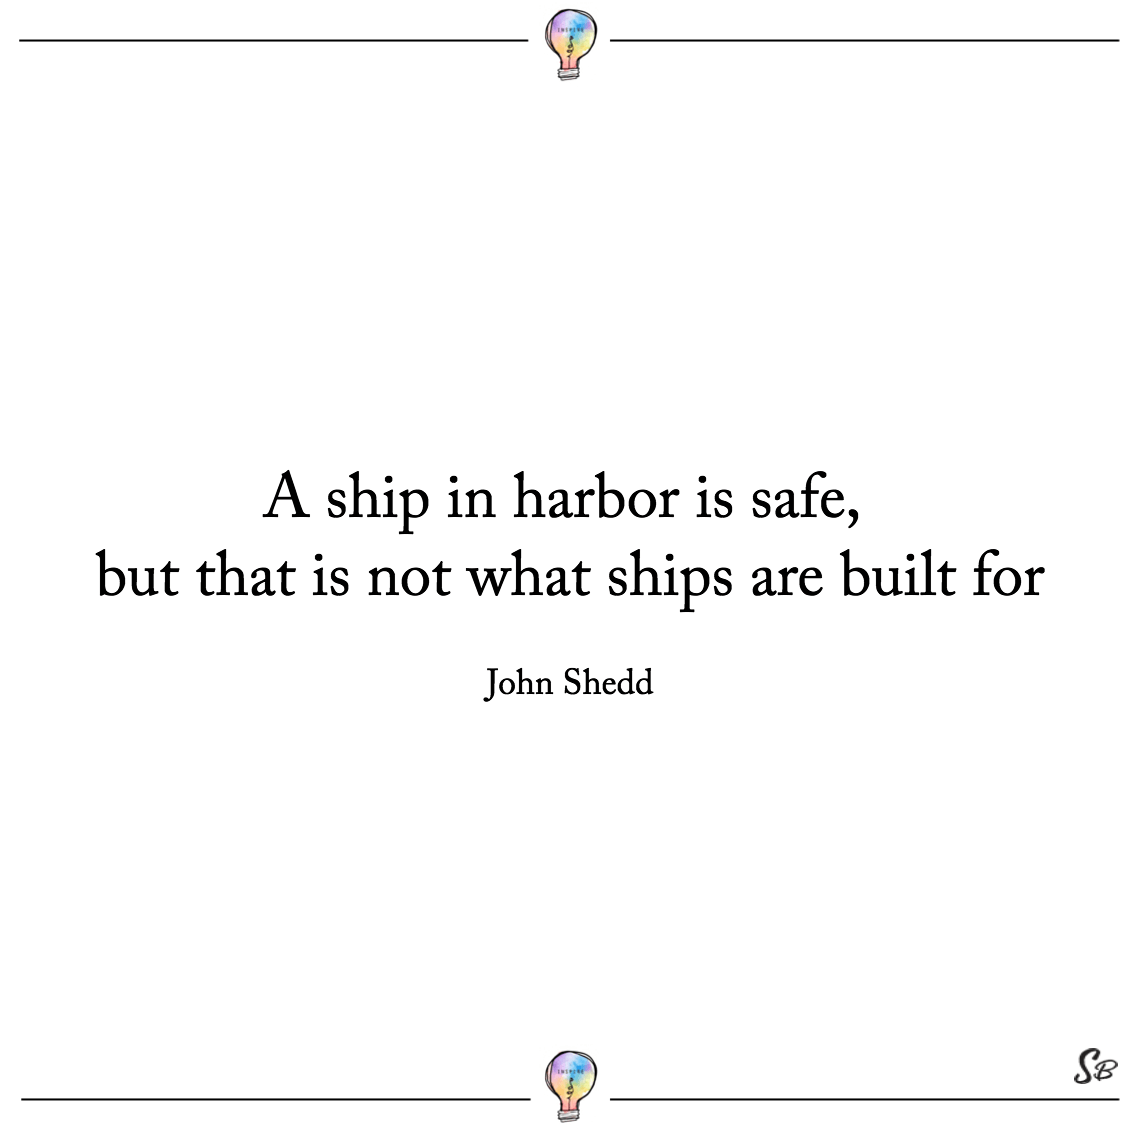 A ship in harbor is safe, but that is not what ships are built for john shedd